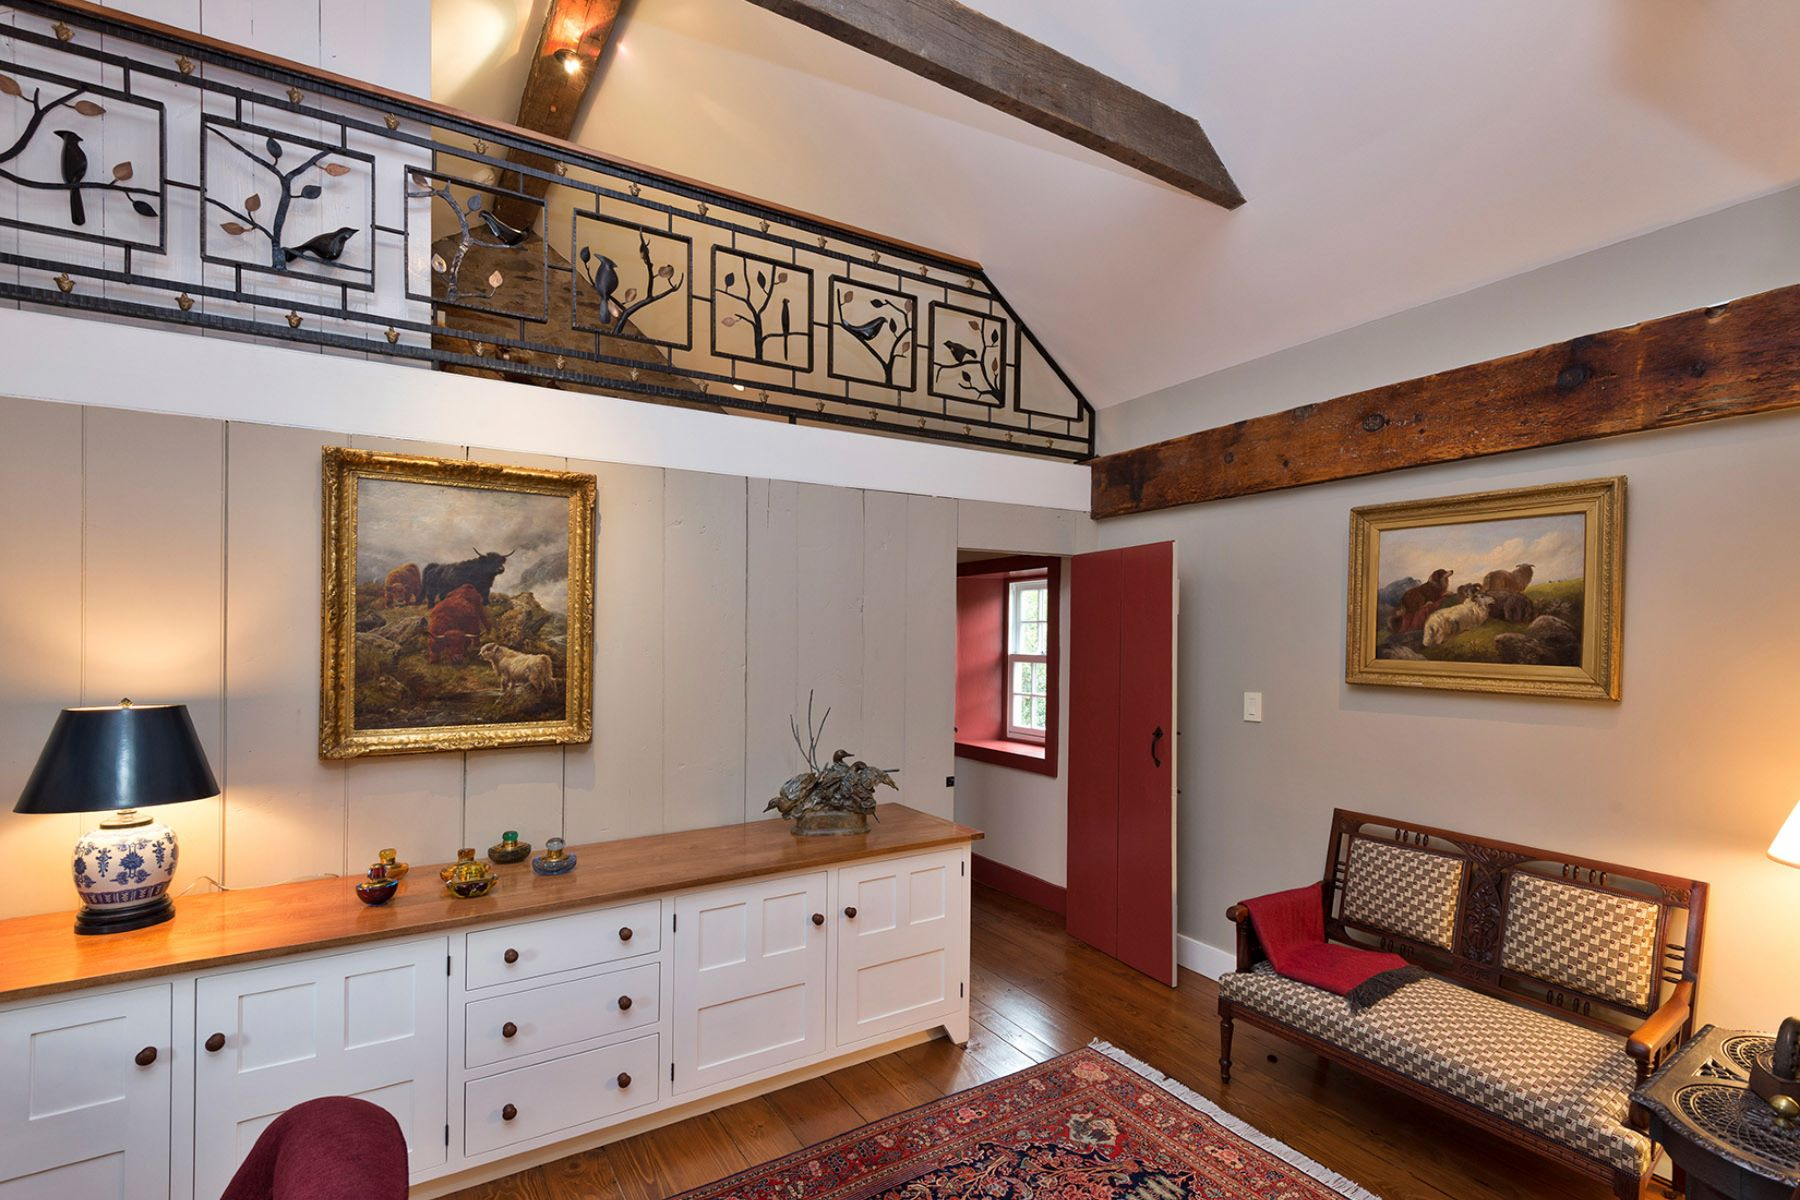 Additional photo for property listing at Experience History & Artistry at Stone Creek Farm - Delaware Township 55 Strimples Mill Road, Stockton, New Jersey 08559 United States